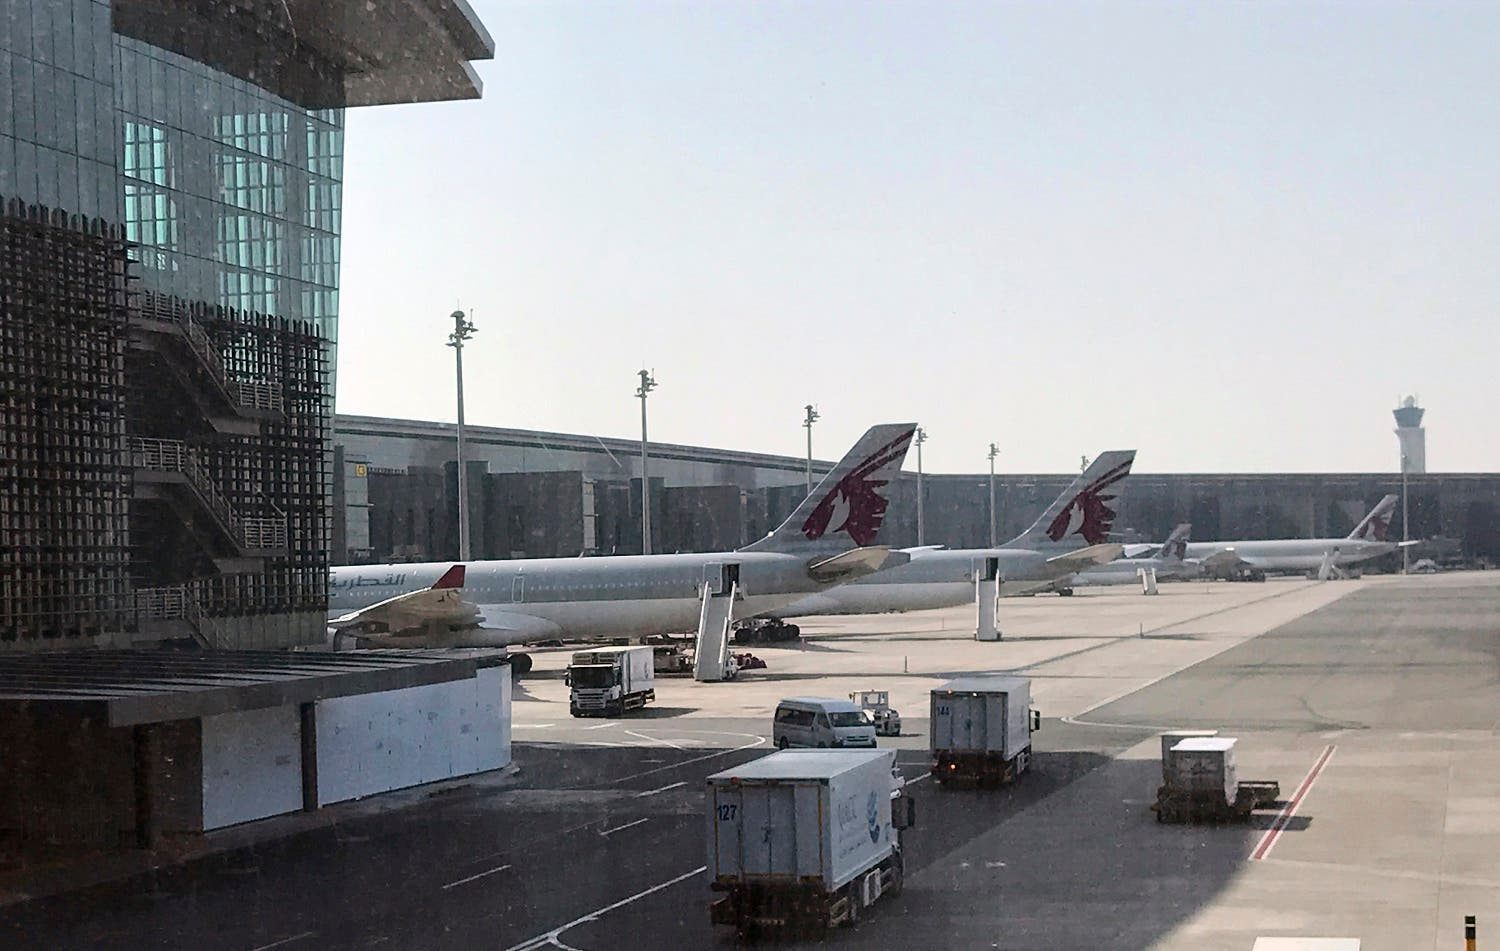 Qatar Airways planes are seen parked at the Hamad International Airport in Doha. (AP)